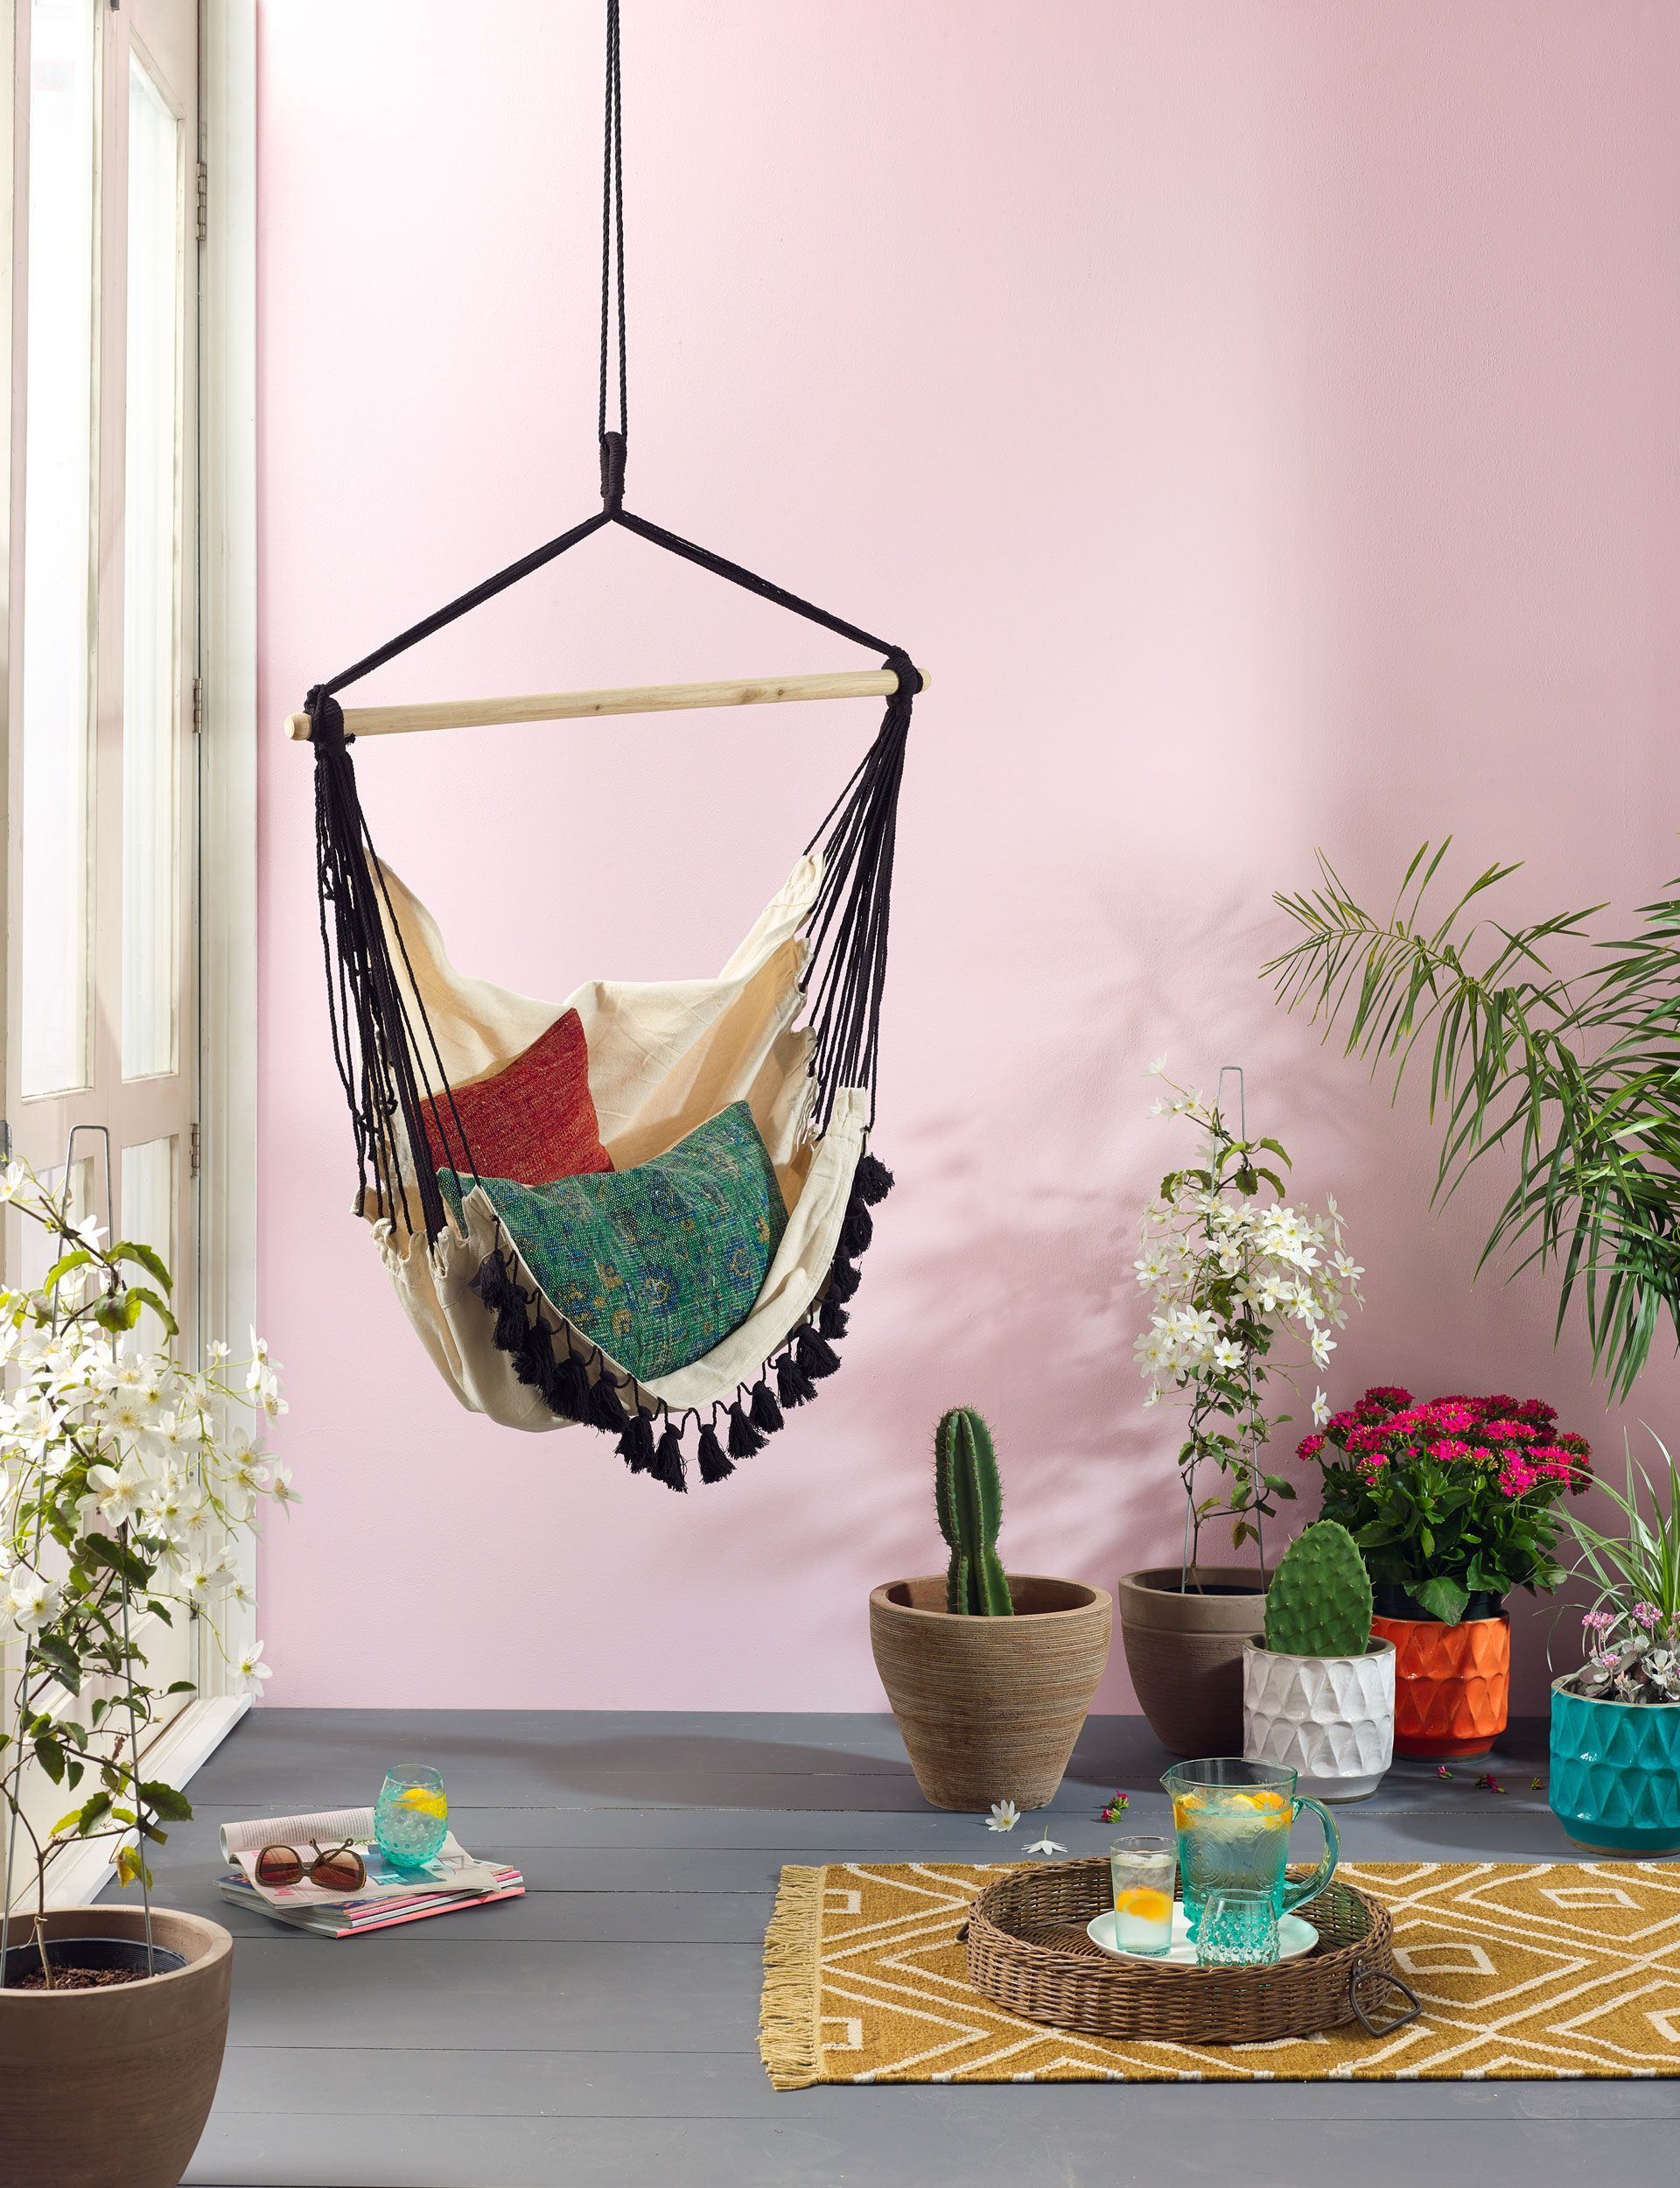 Boho chic amazing hammocks that add a bohemian flair to your home